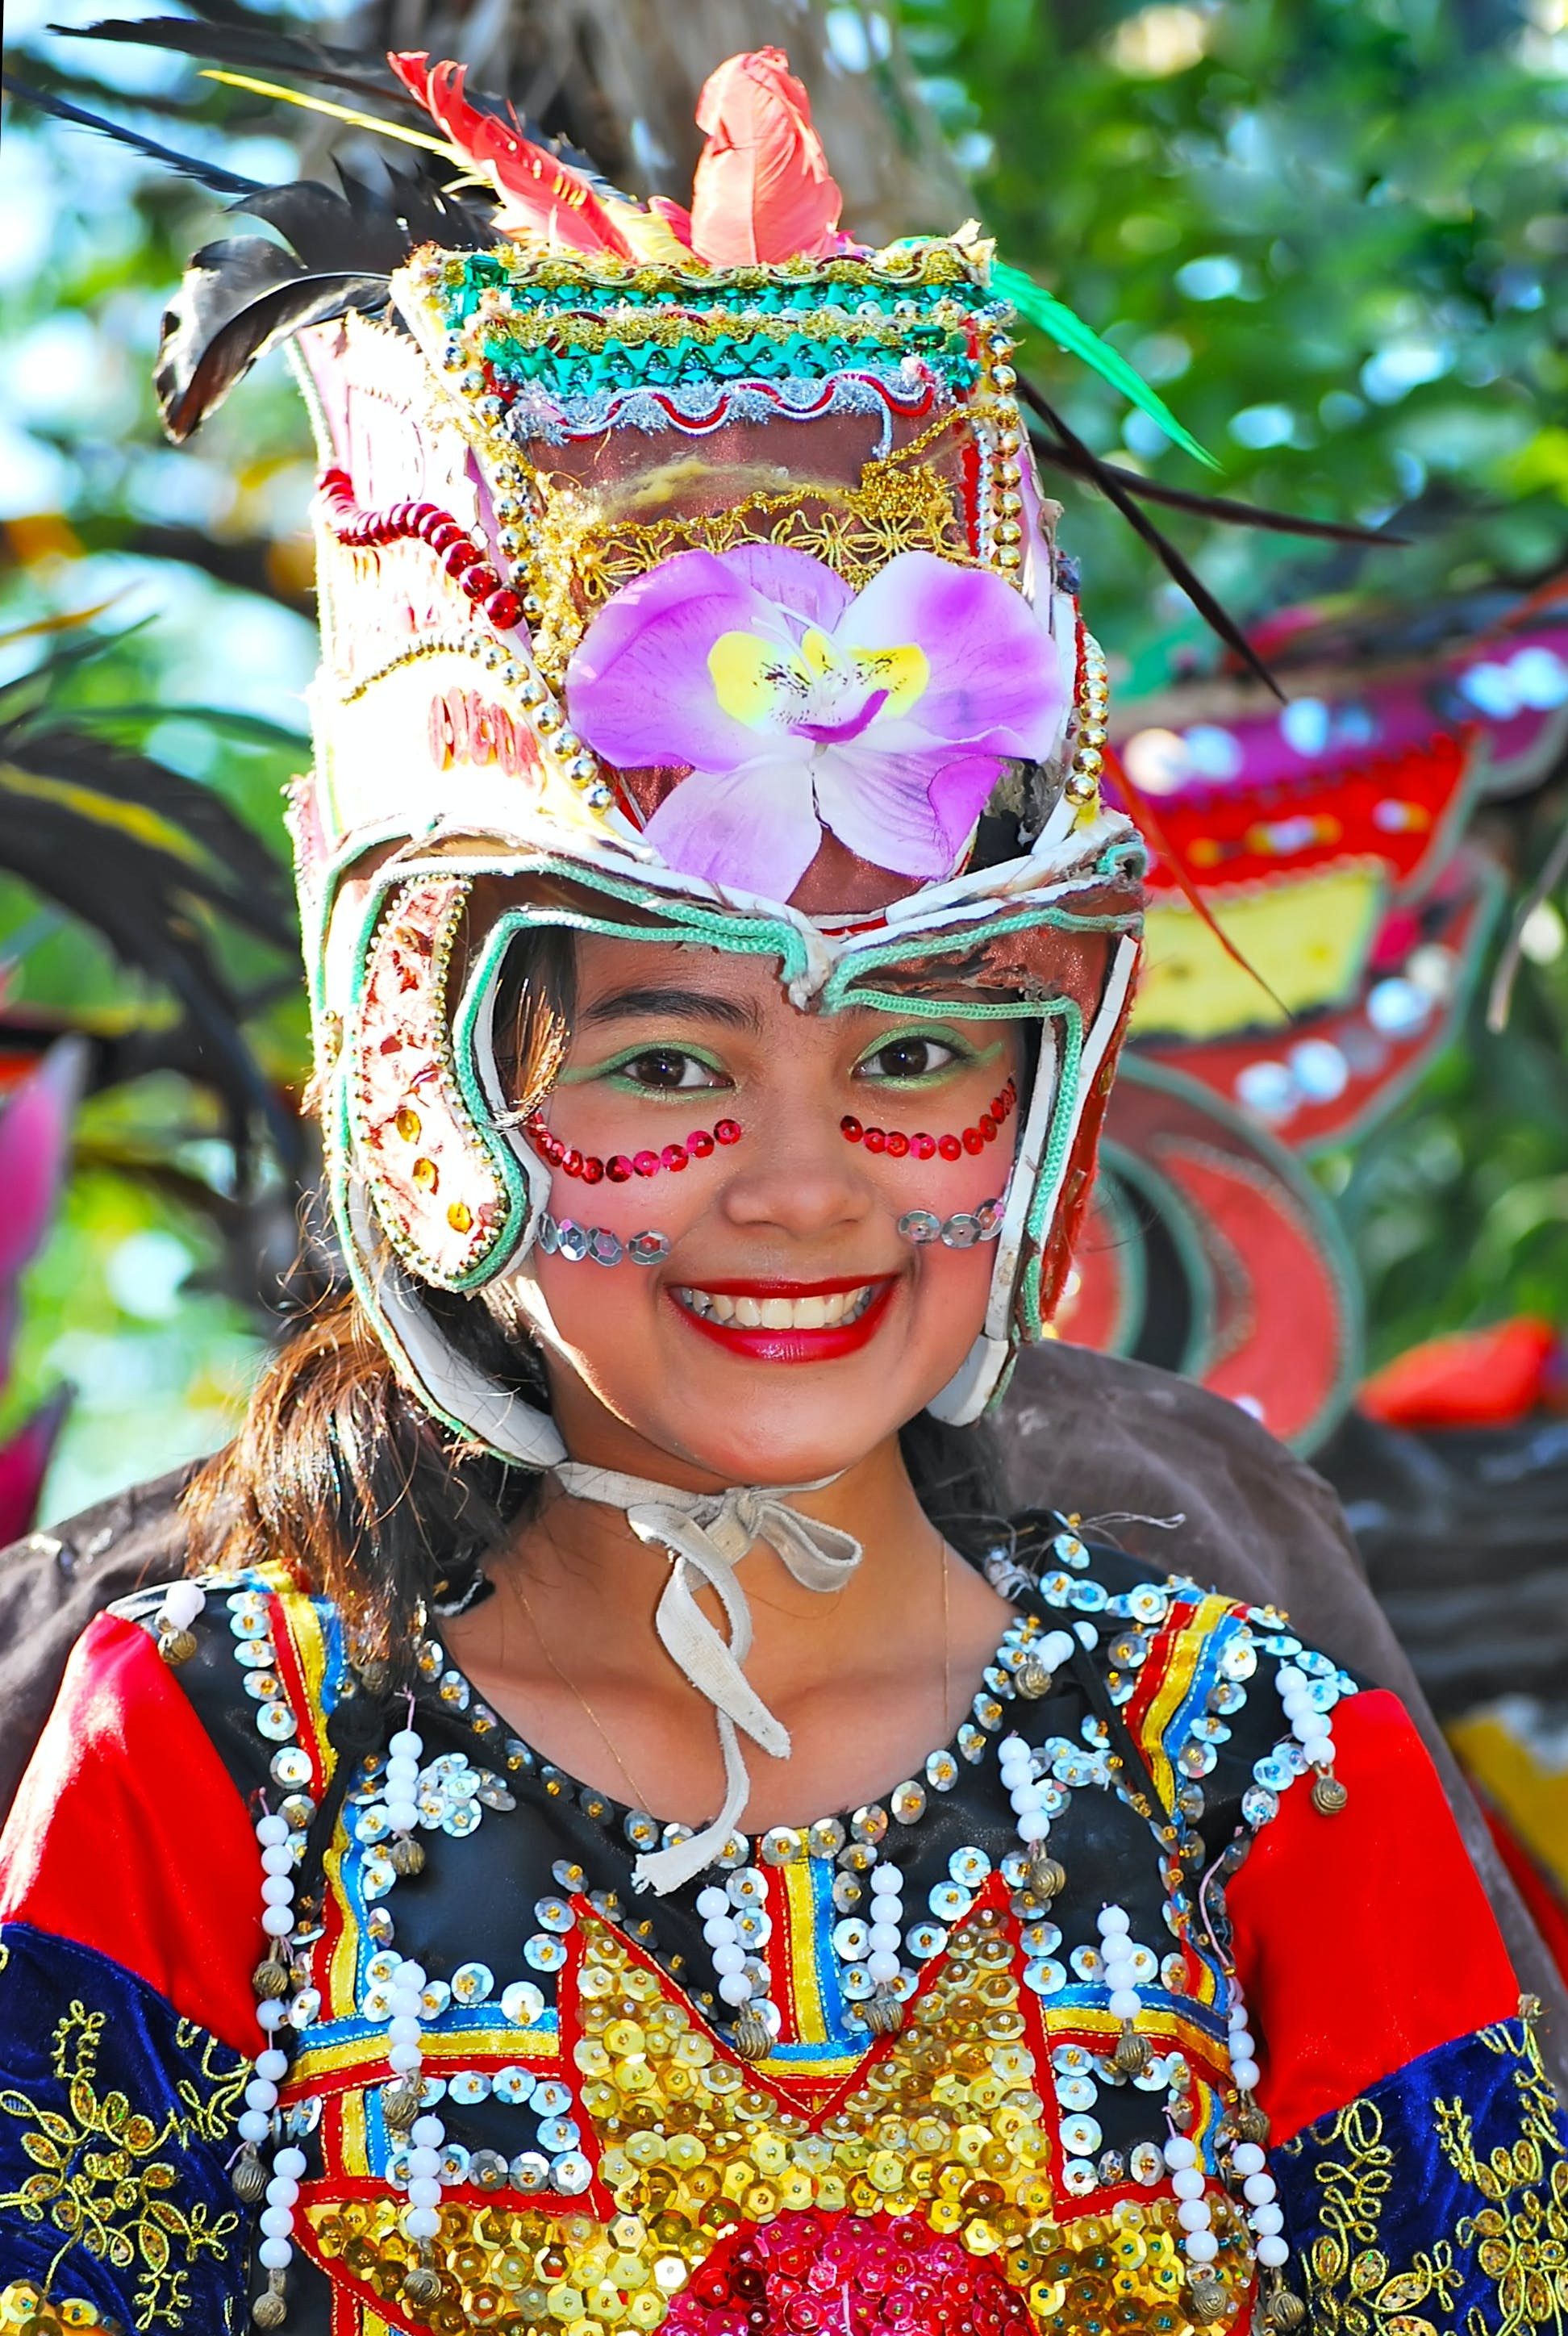 Smiling Girl Wearing Tribal Costume